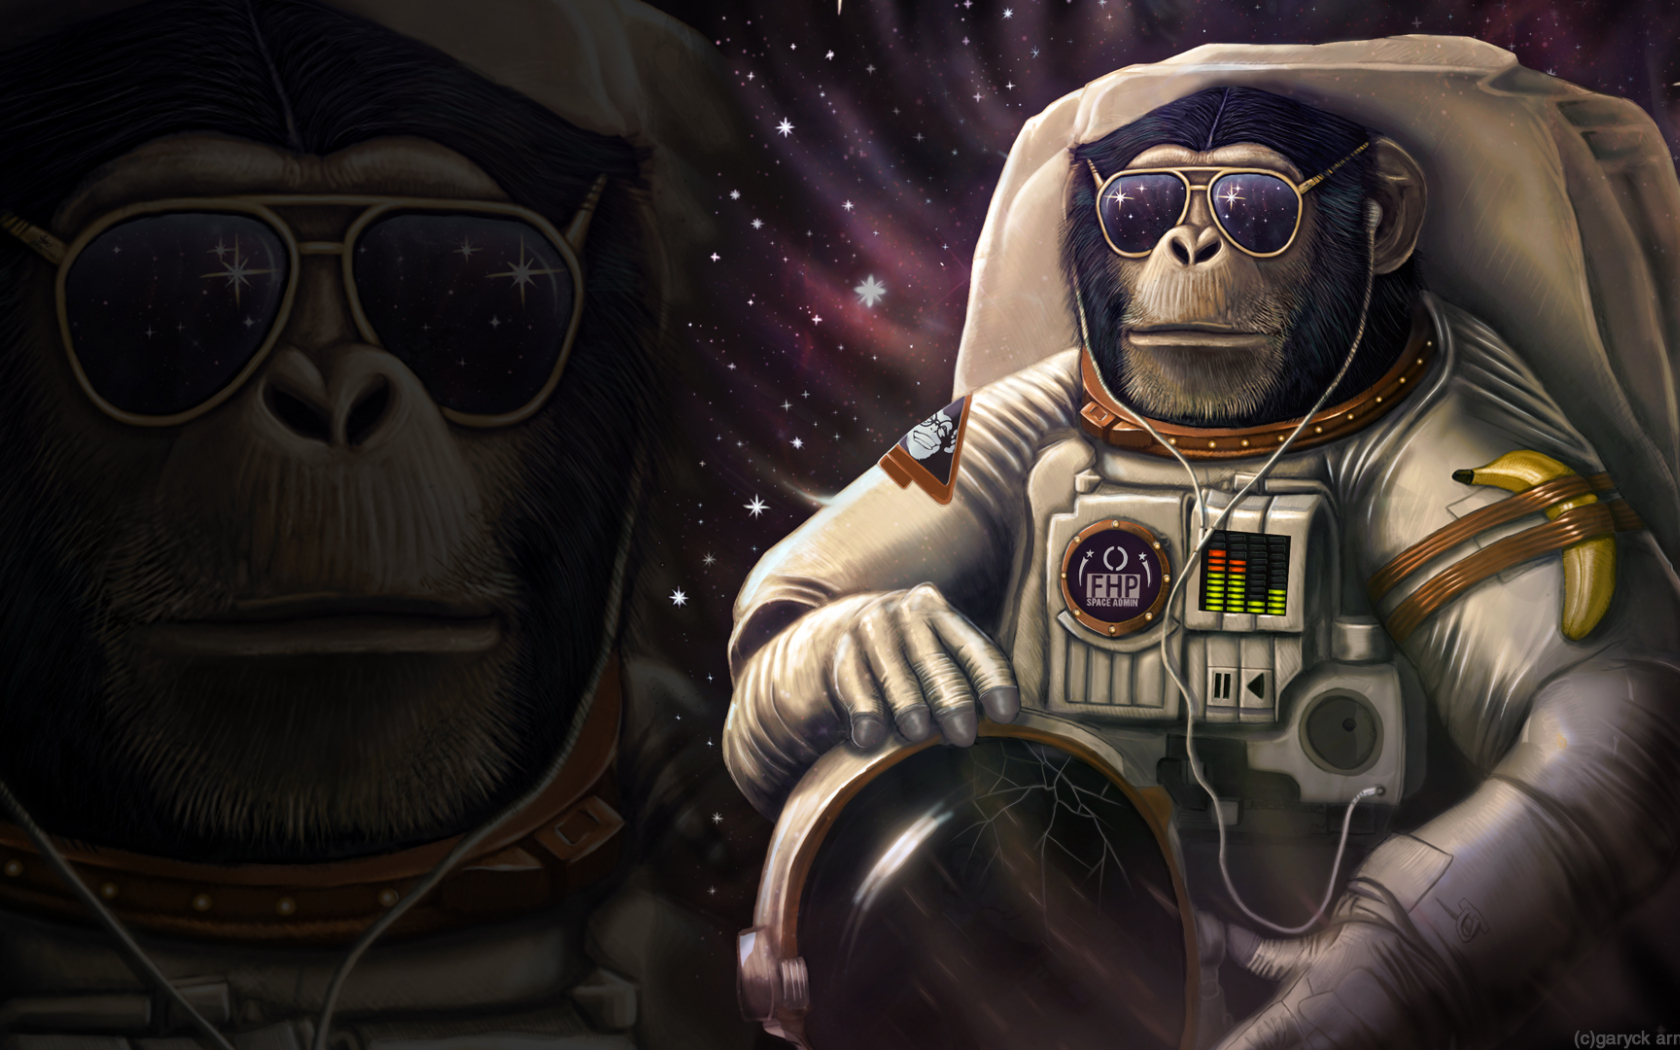 Free Download Monkey Sunglasses Astronaut Wtf Banana Wallpaper